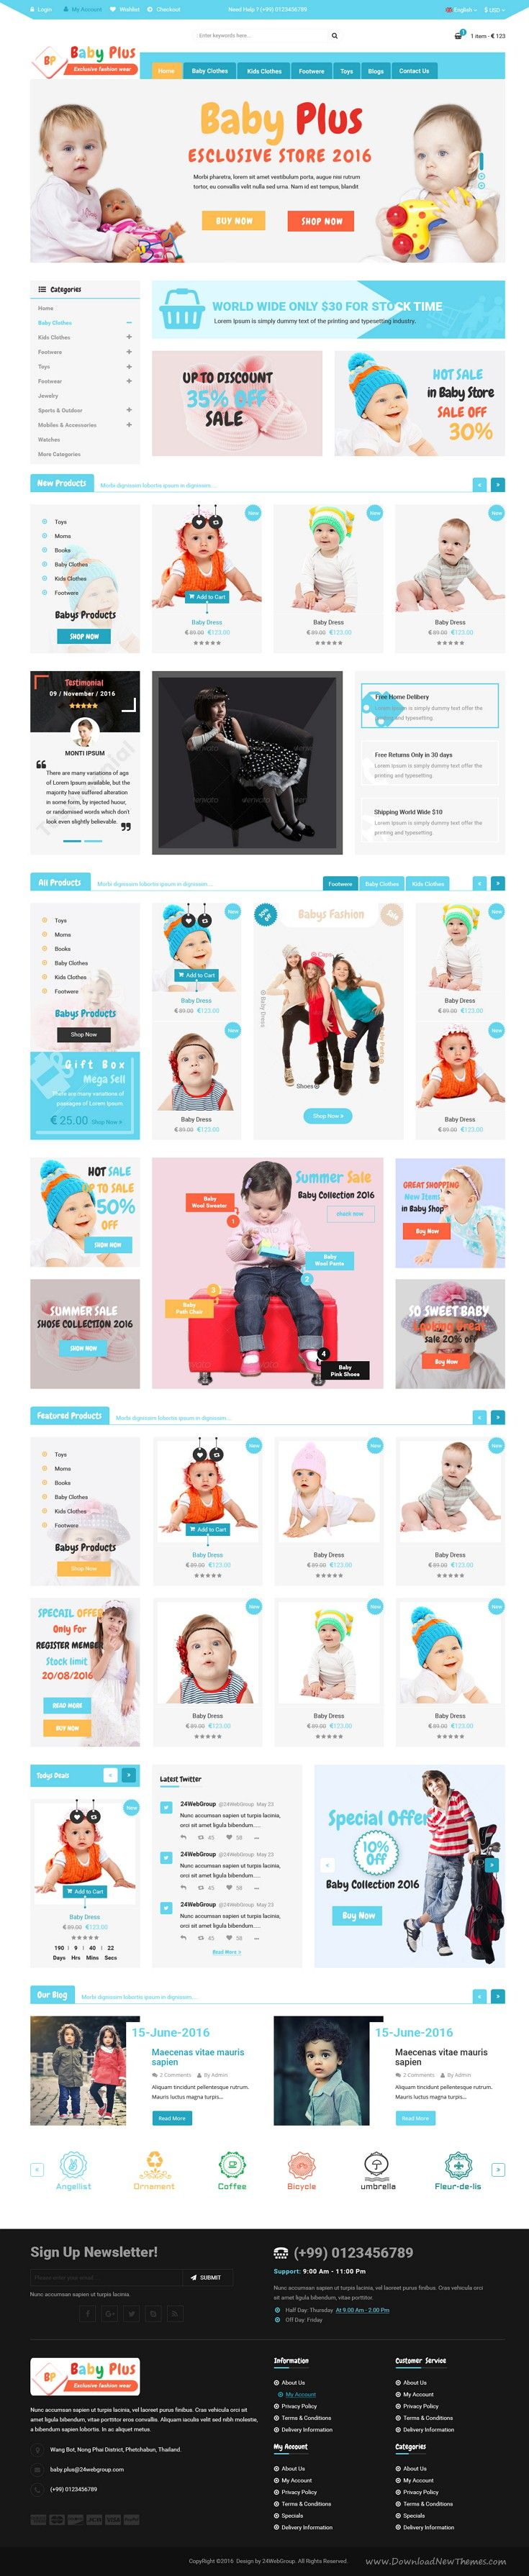 BabyPlus is wonderful eCommerce PSD template for for baby, #child, #toys, #clothing or fashion #store websites. Download Now!